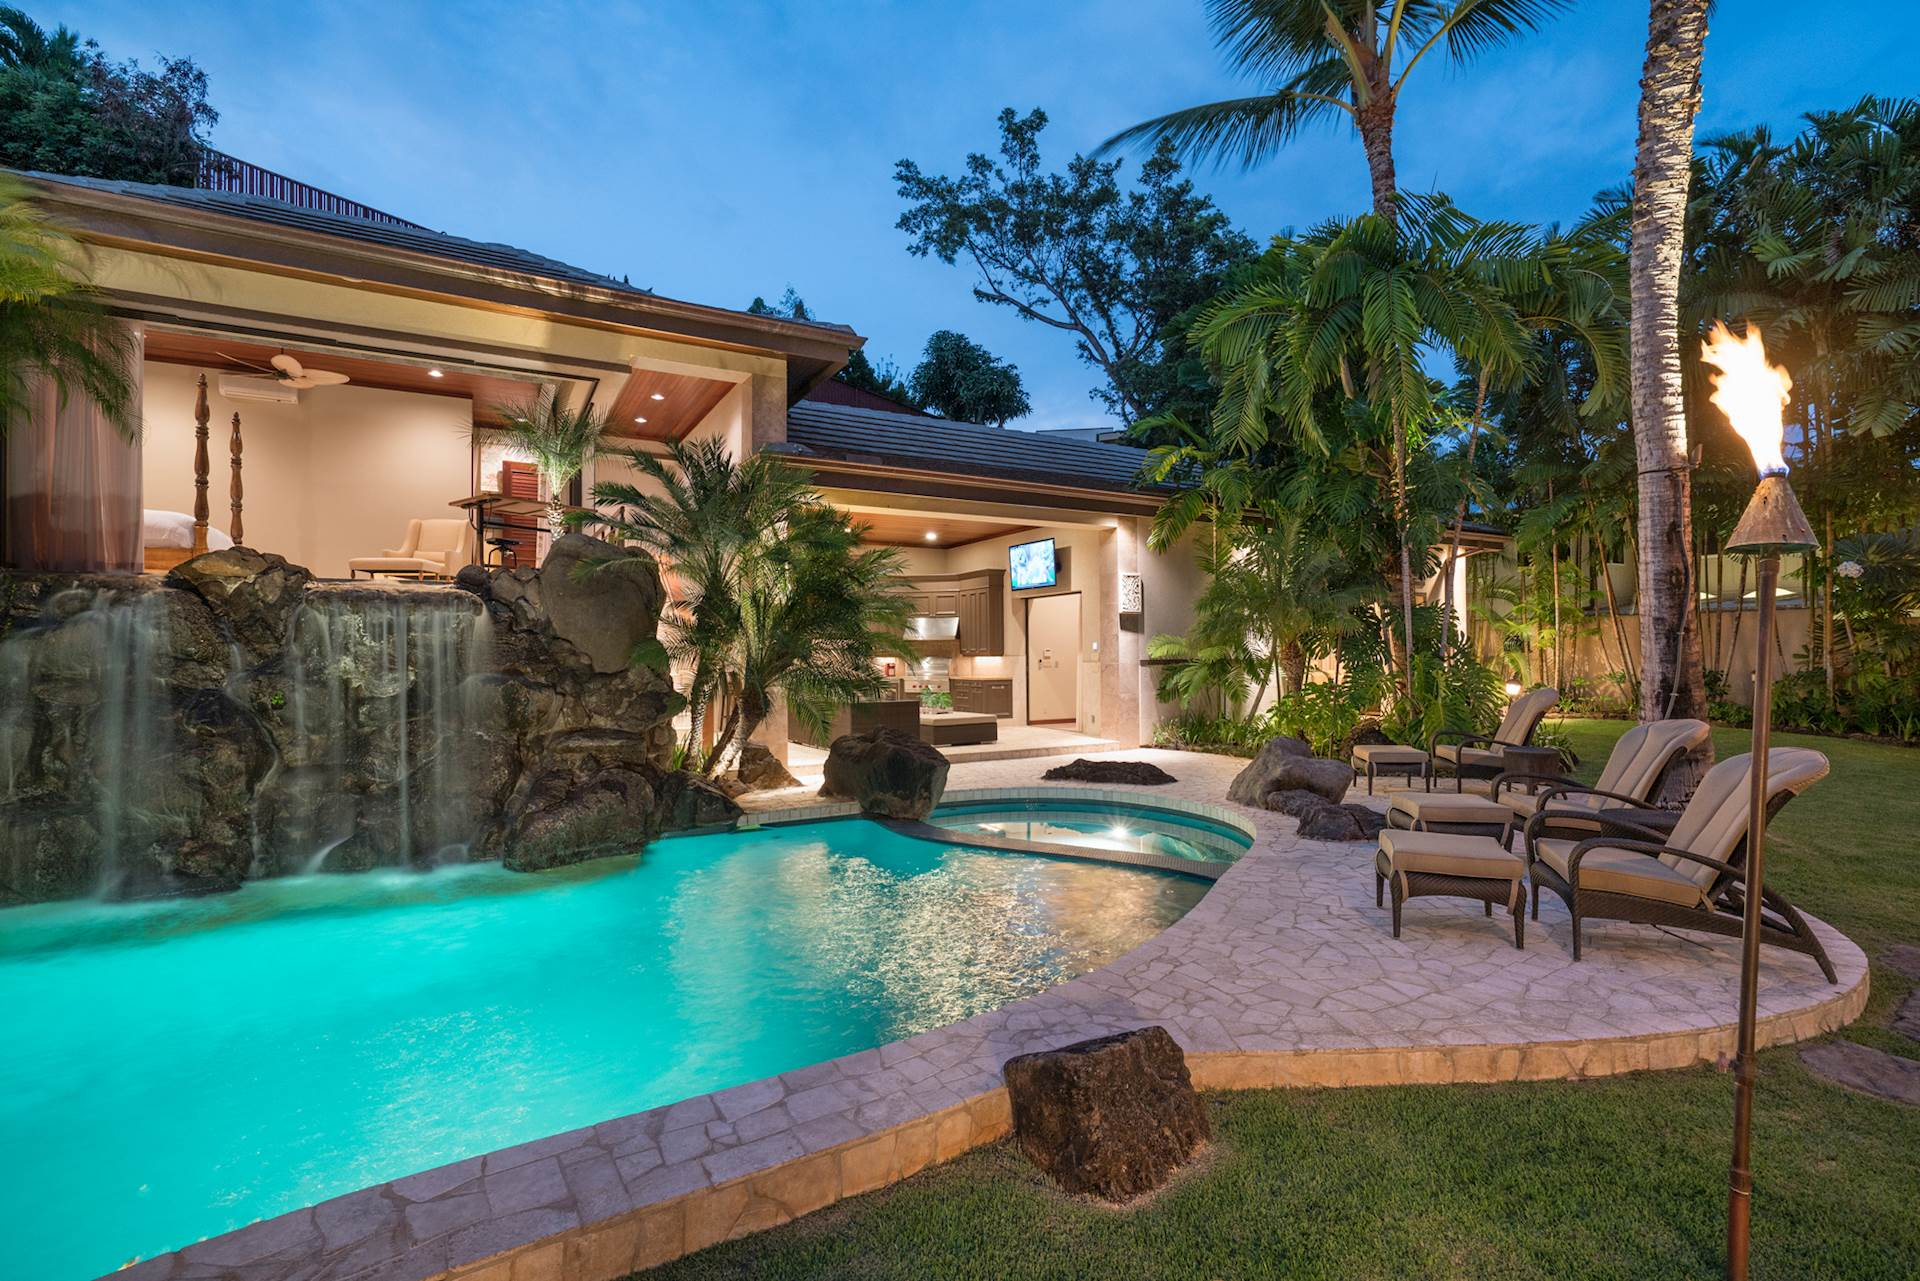 Hawaii Luxury Real Estate Homes For Sale In Hawaii | Elite Pacific  Properties Photo